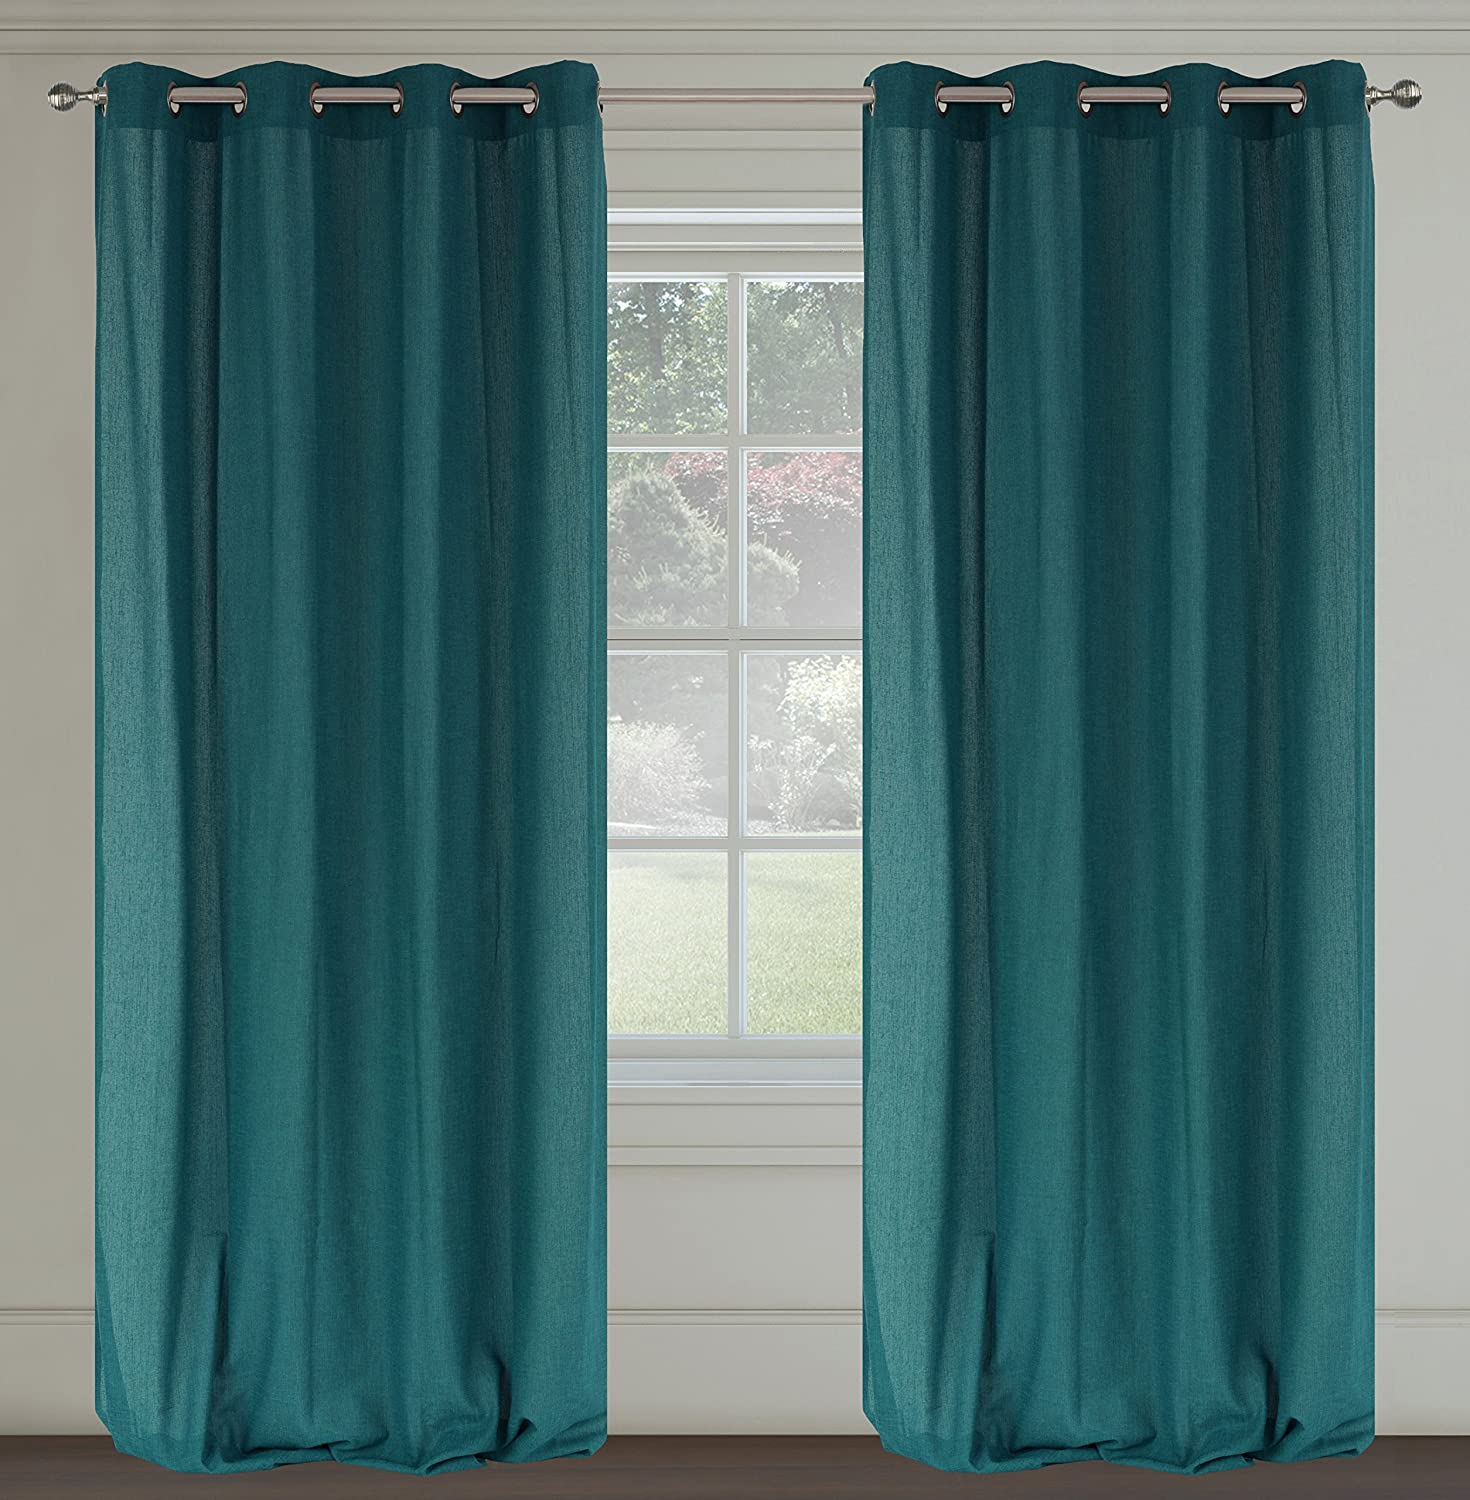 Amazon.com: Maestro Linen-Look Grommet Curtain Panels (Set of 2 ...